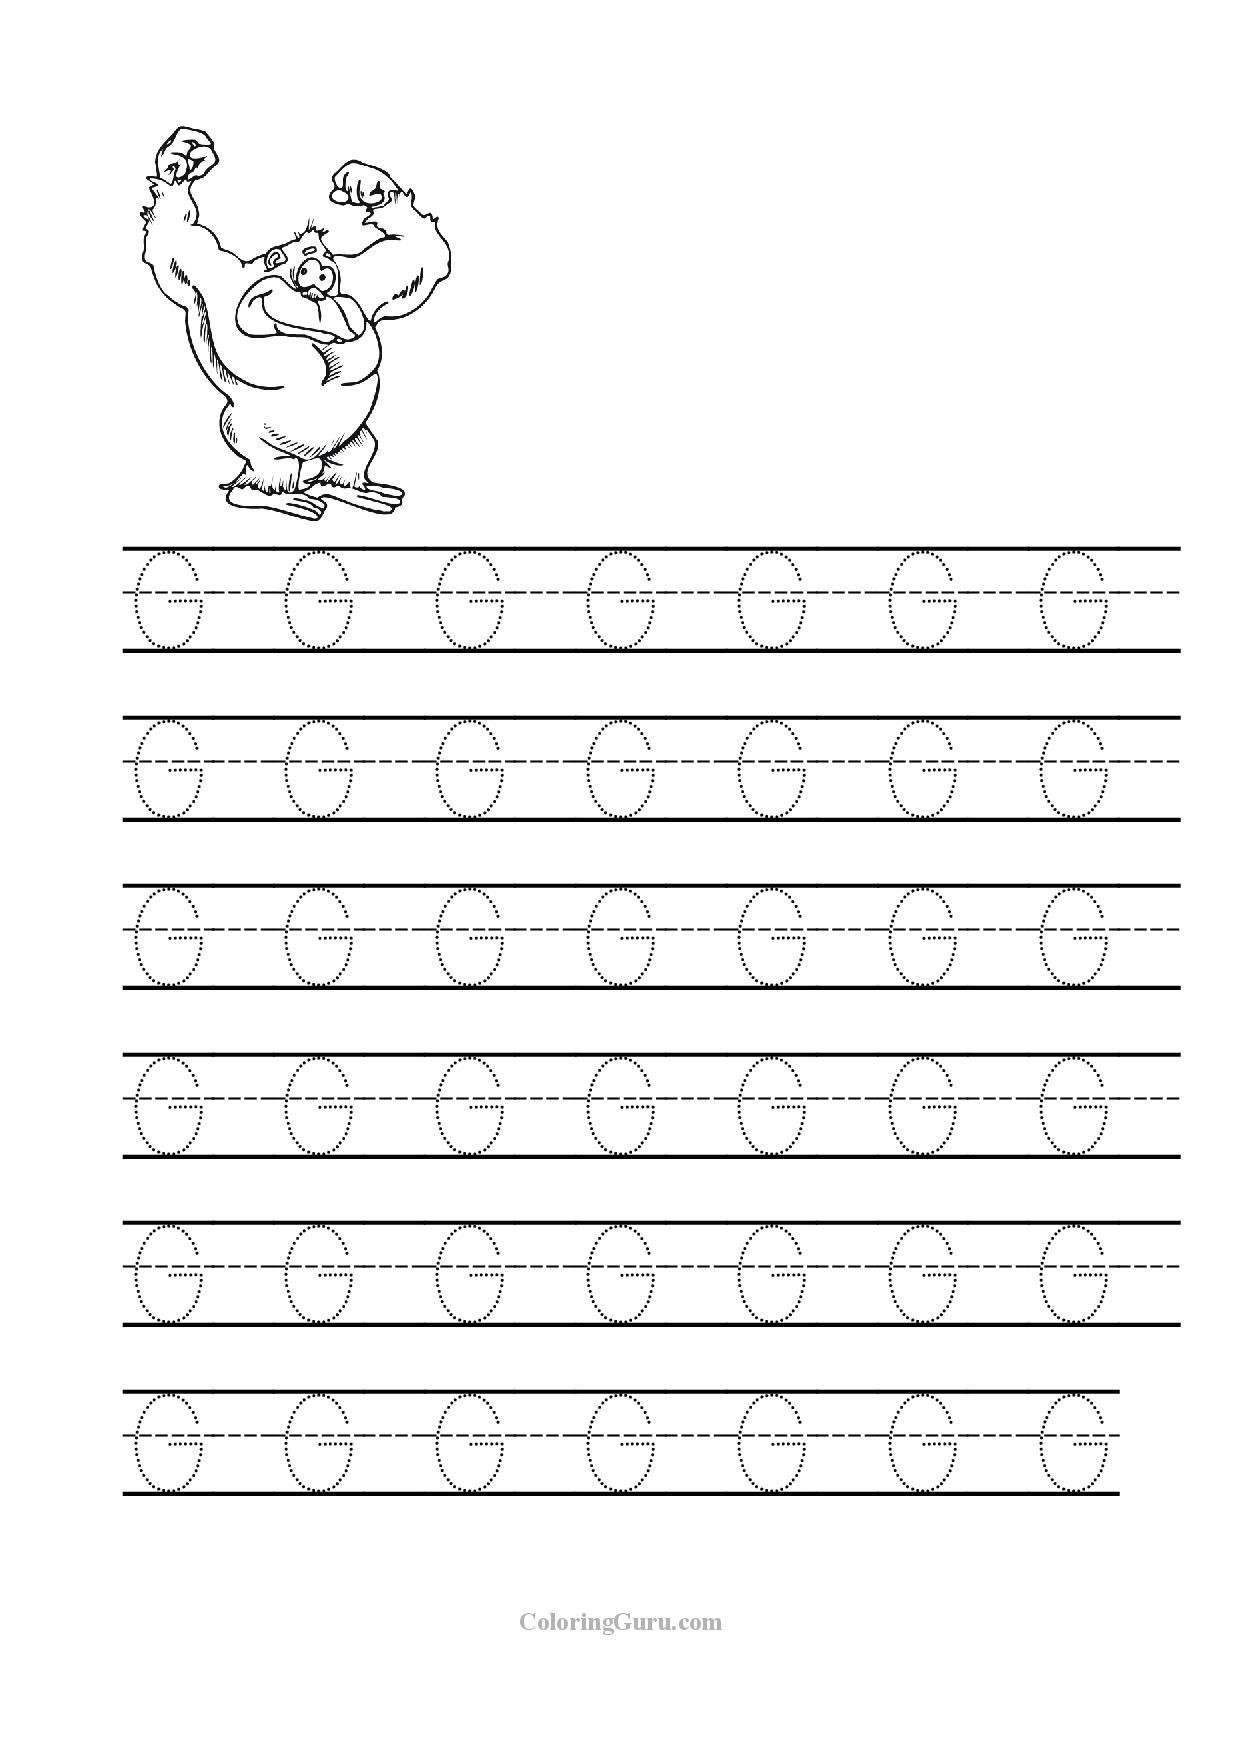 Preschool Letter G Worksheets Free Printable Tracing Letter G Worksheets for Preschool